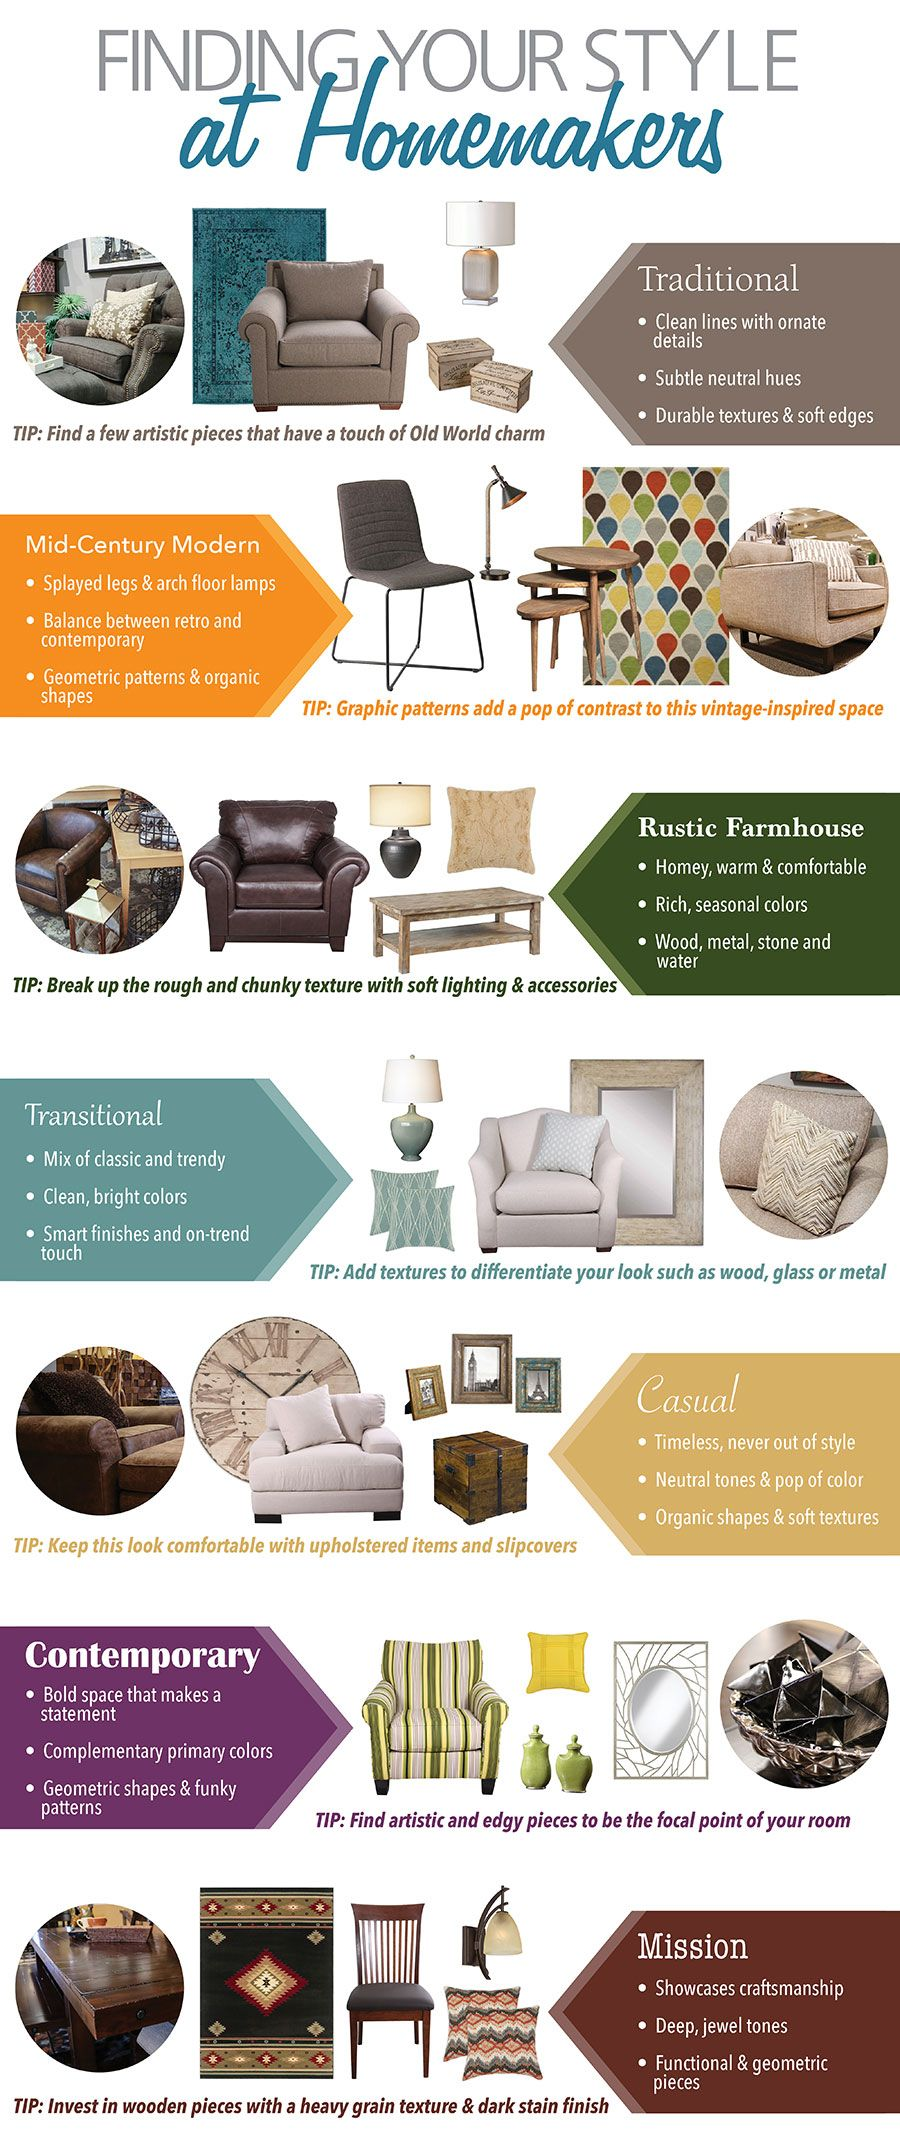 Interior Design Styles Infographic